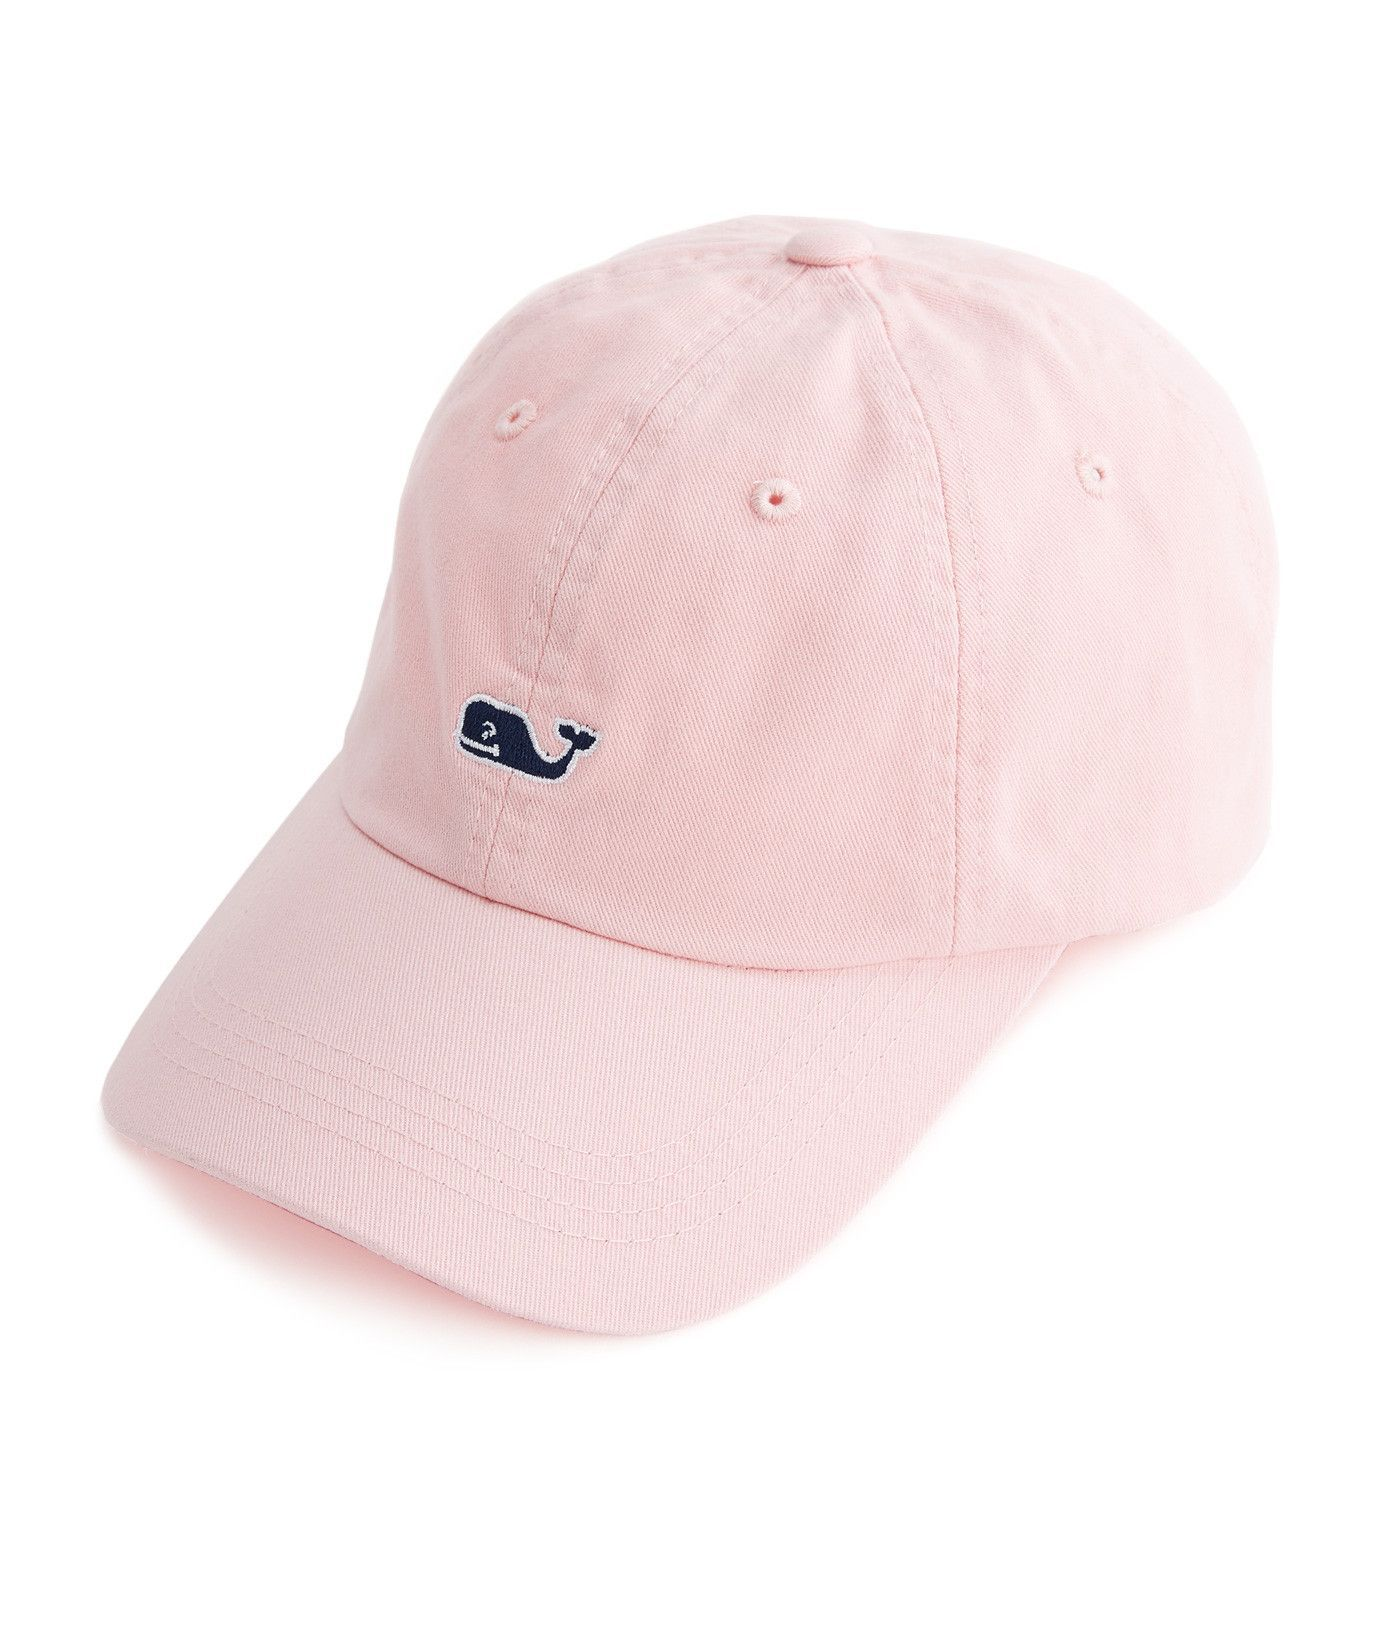 a018261c985 Must have. Vineyard Vines Whale Logo Baseball Hat